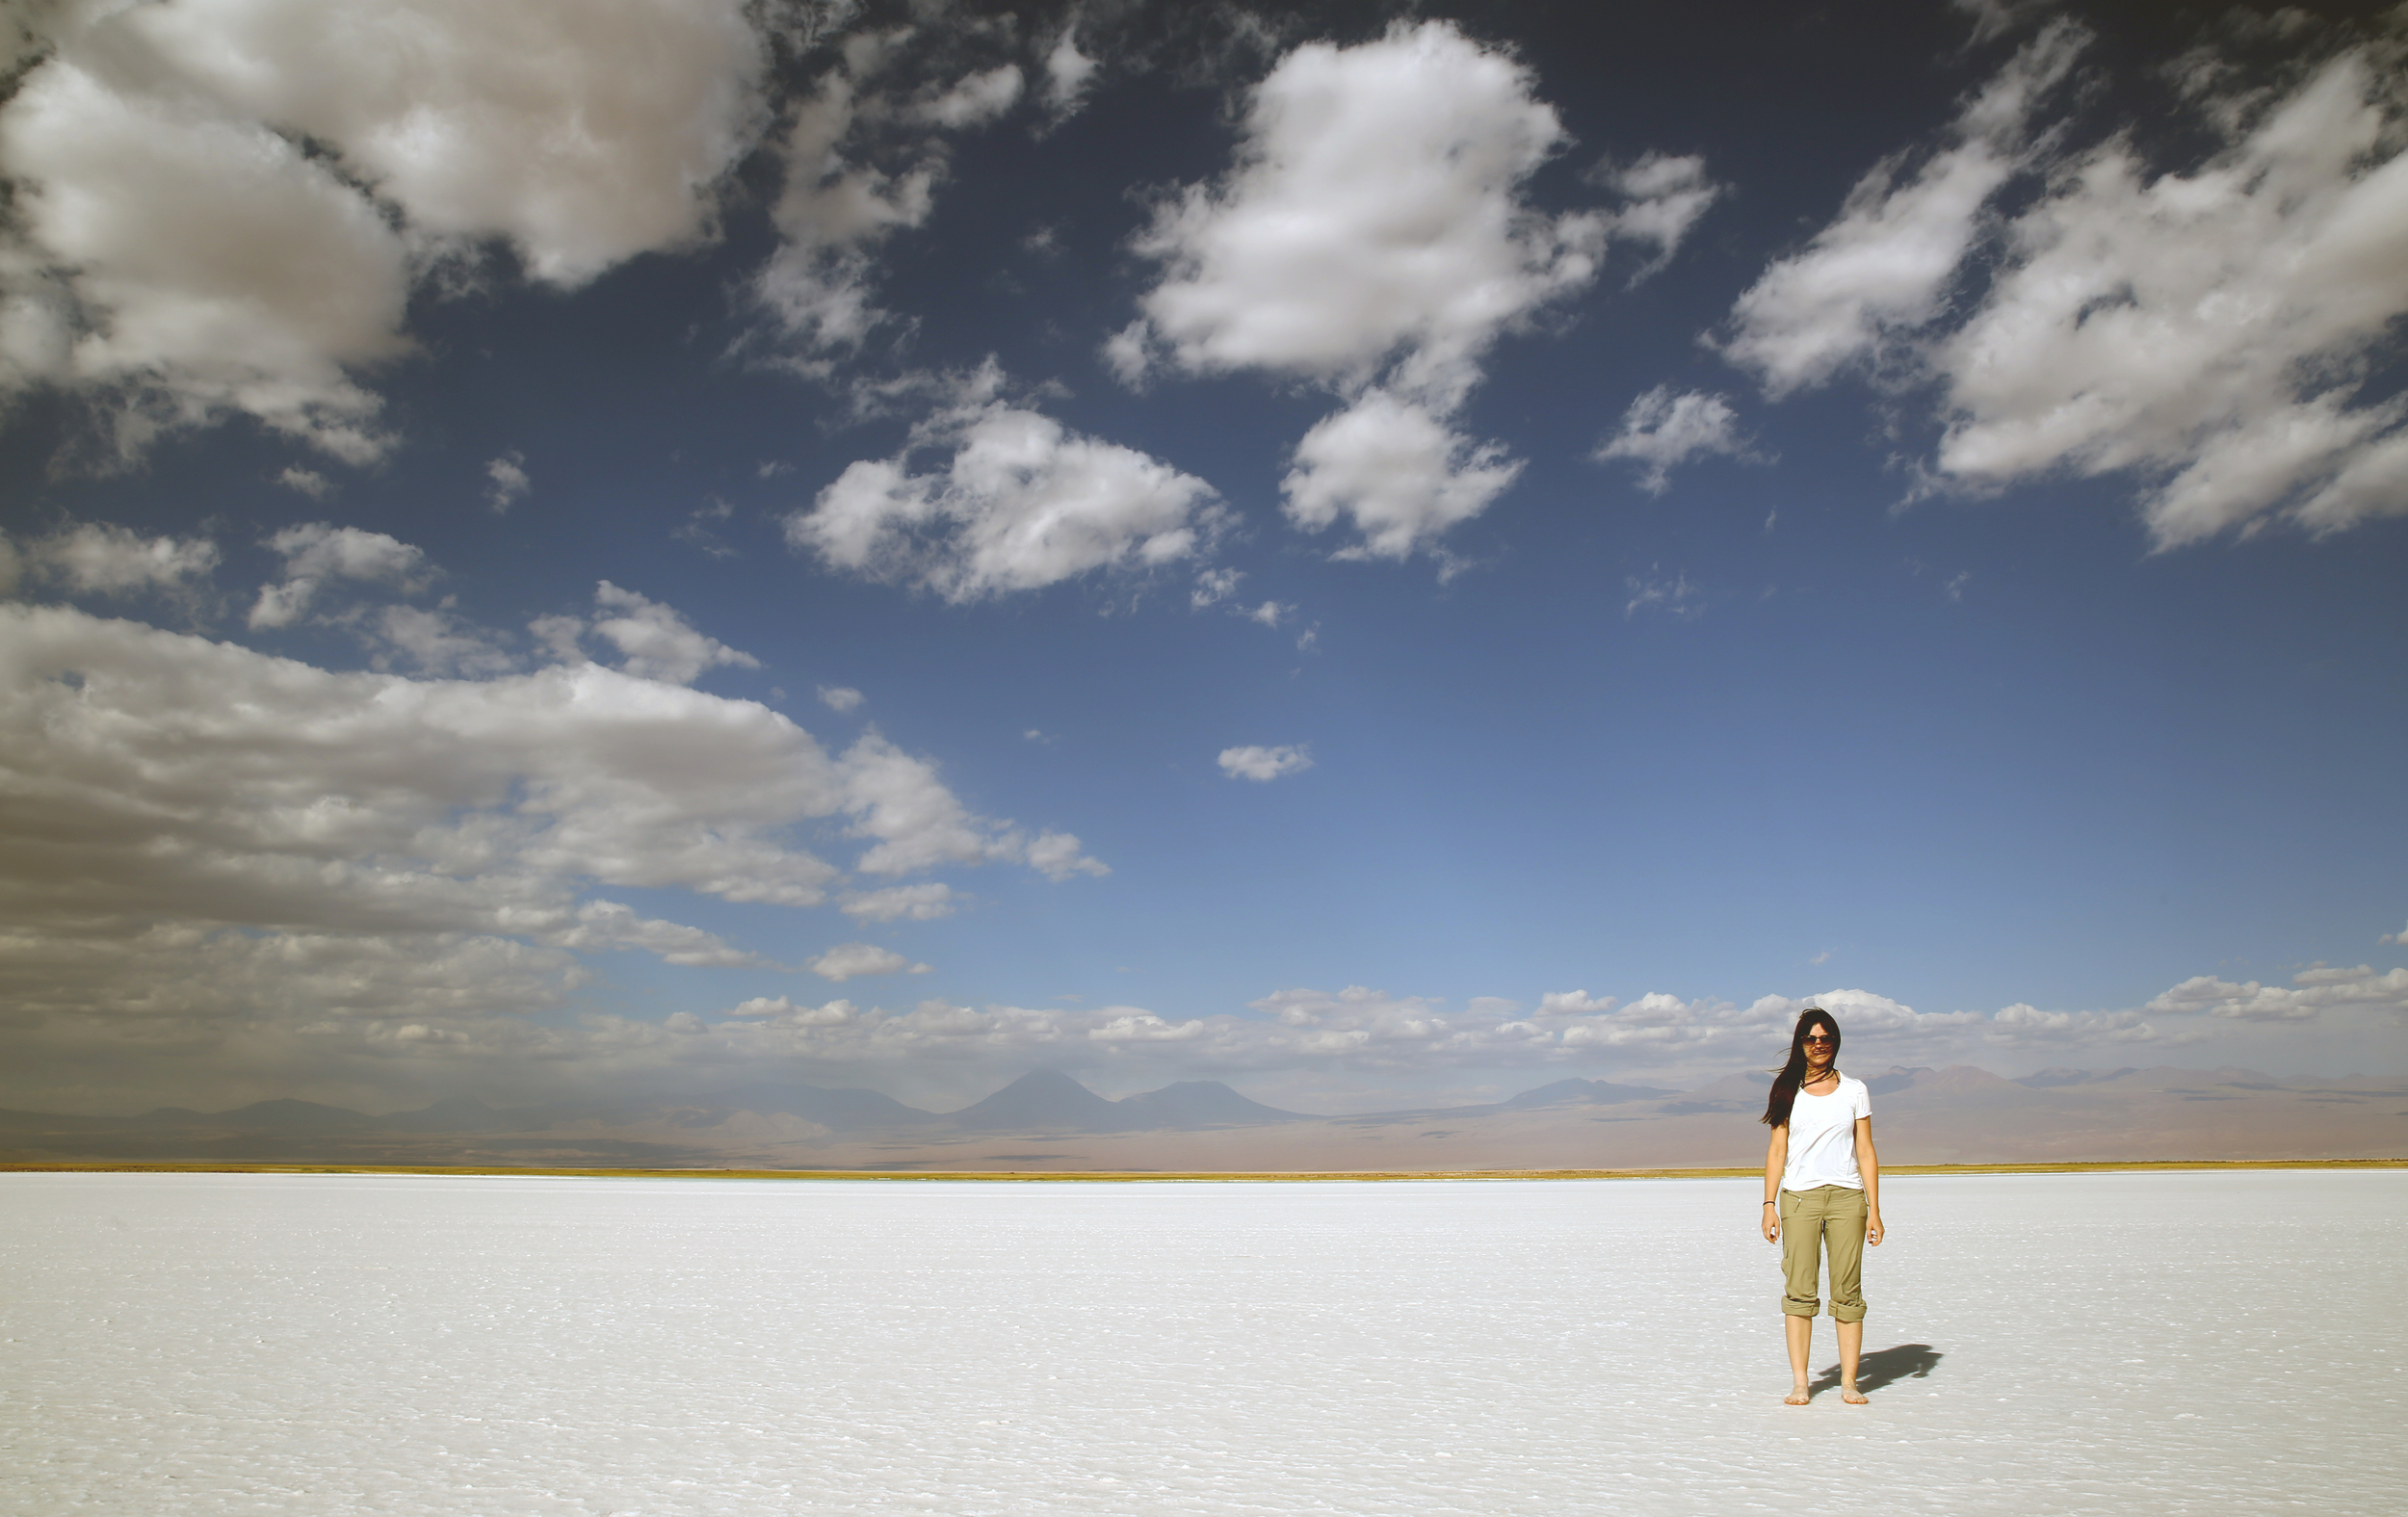 Salt flats in Atacama